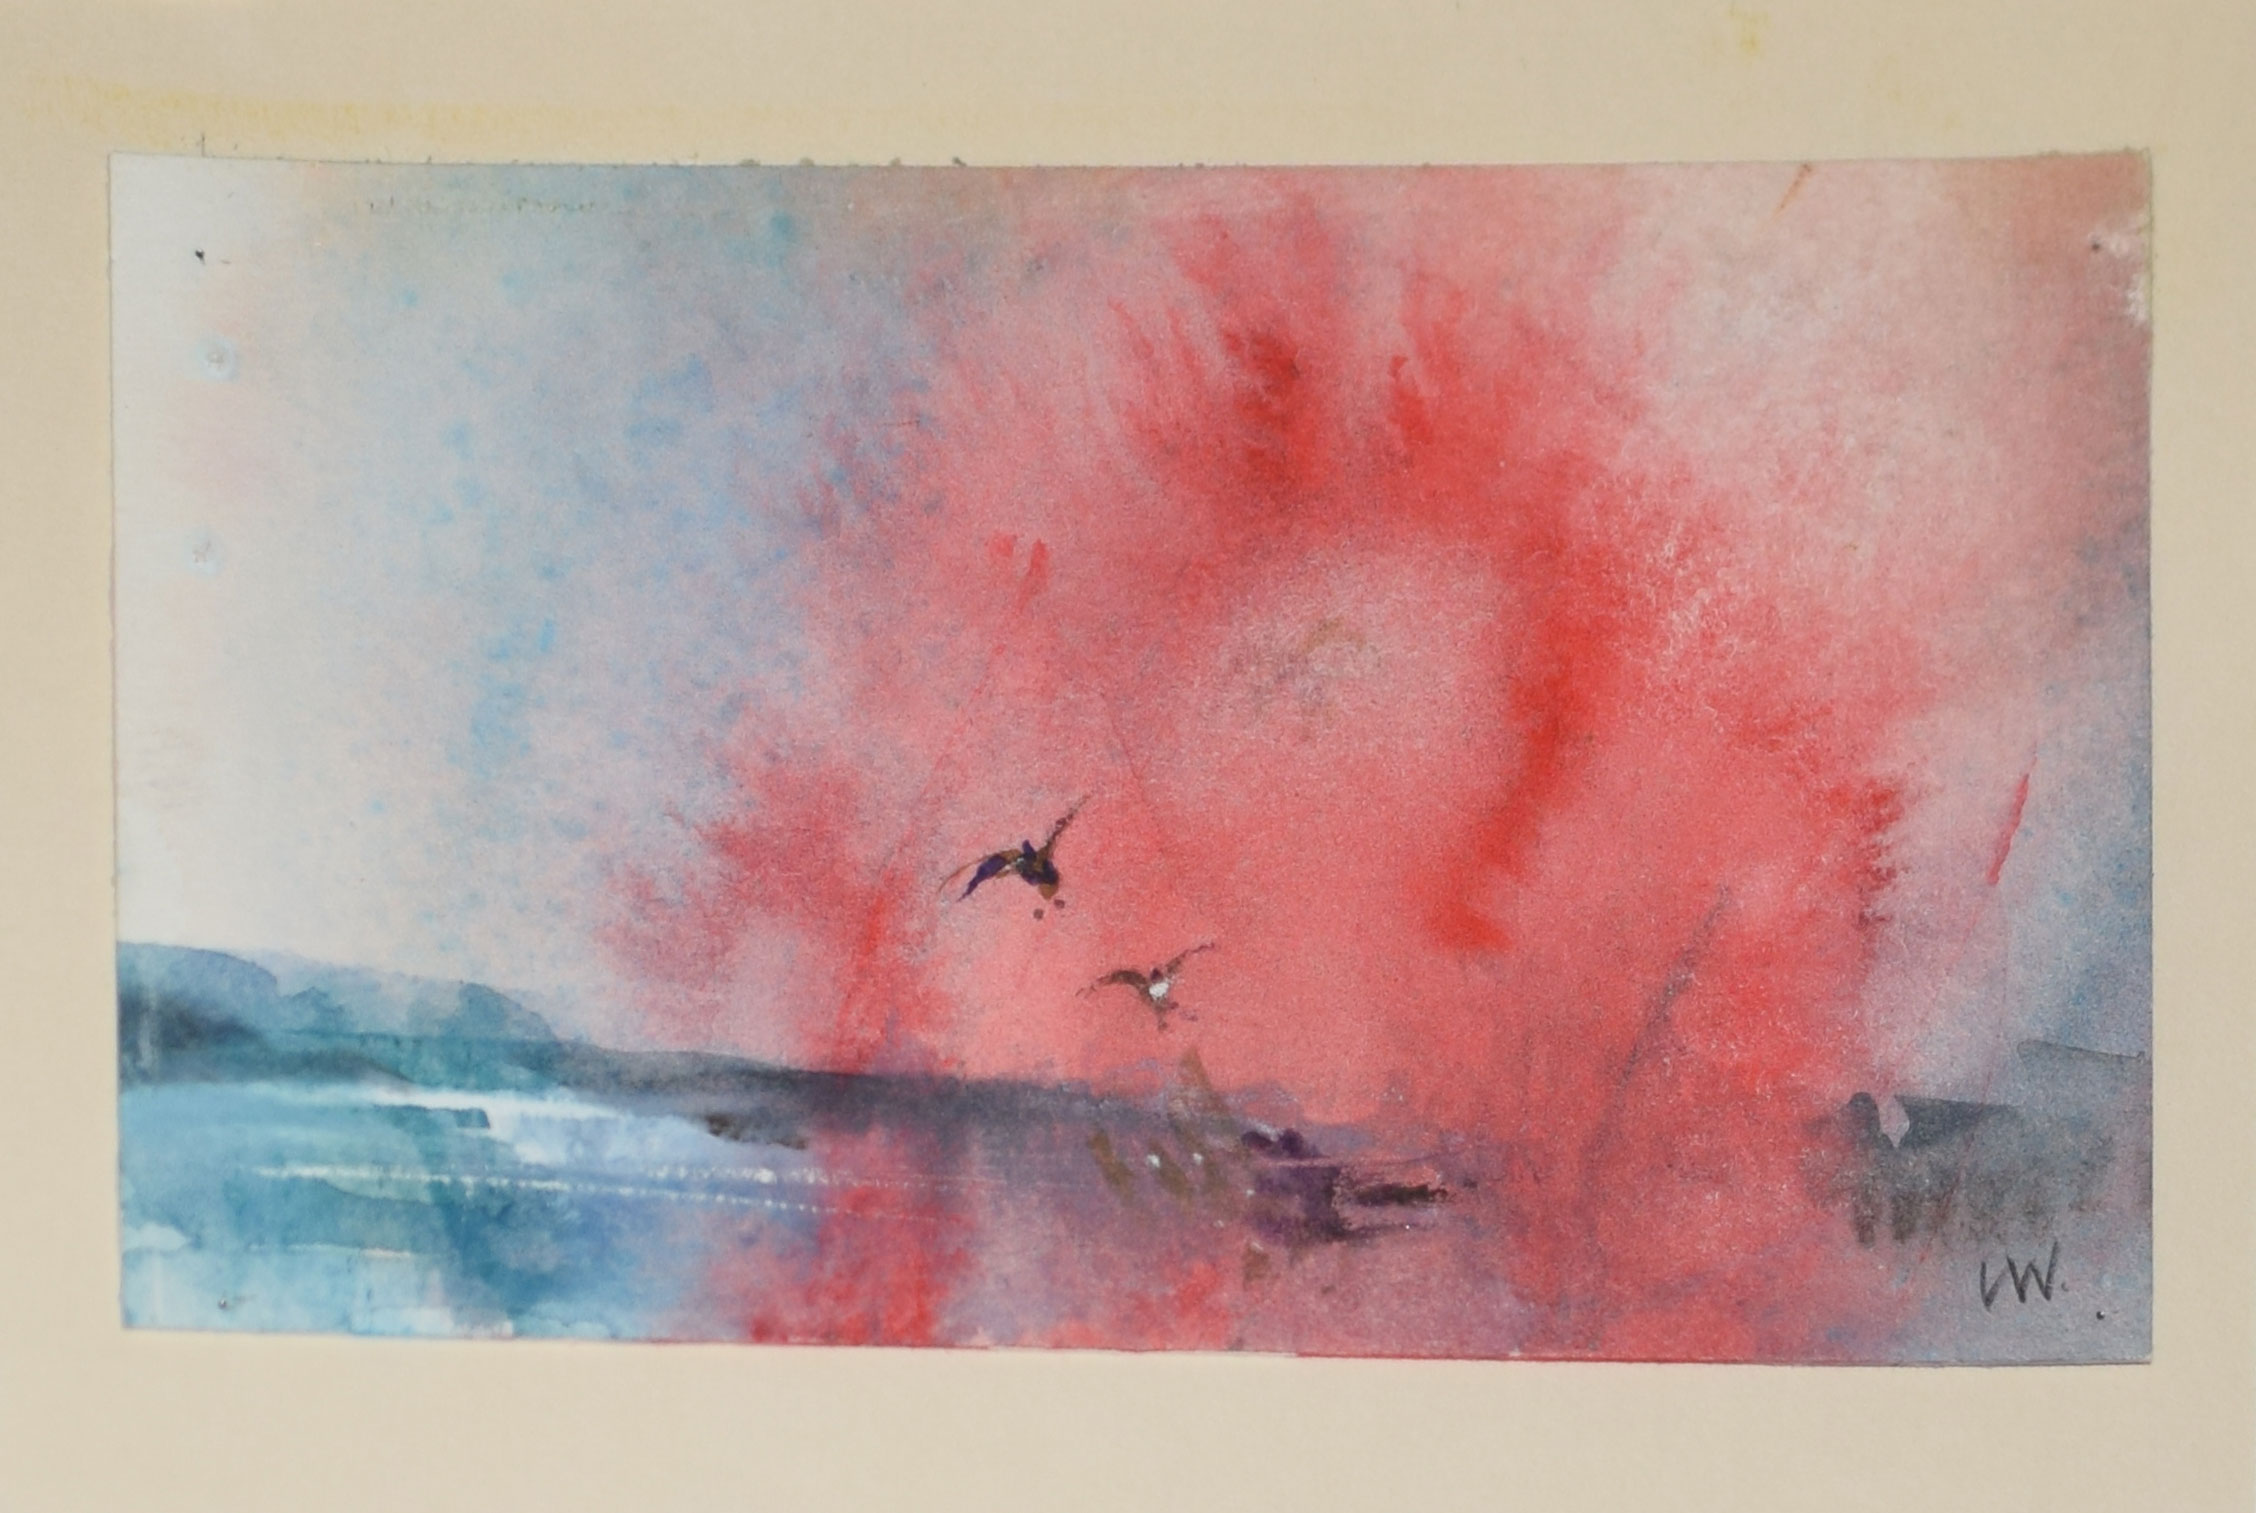 Leslie Worth, RWS, RBA, NEAC, ARCA, Geese alighting, watercolour, initialled lower right, 8 x - Image 3 of 3